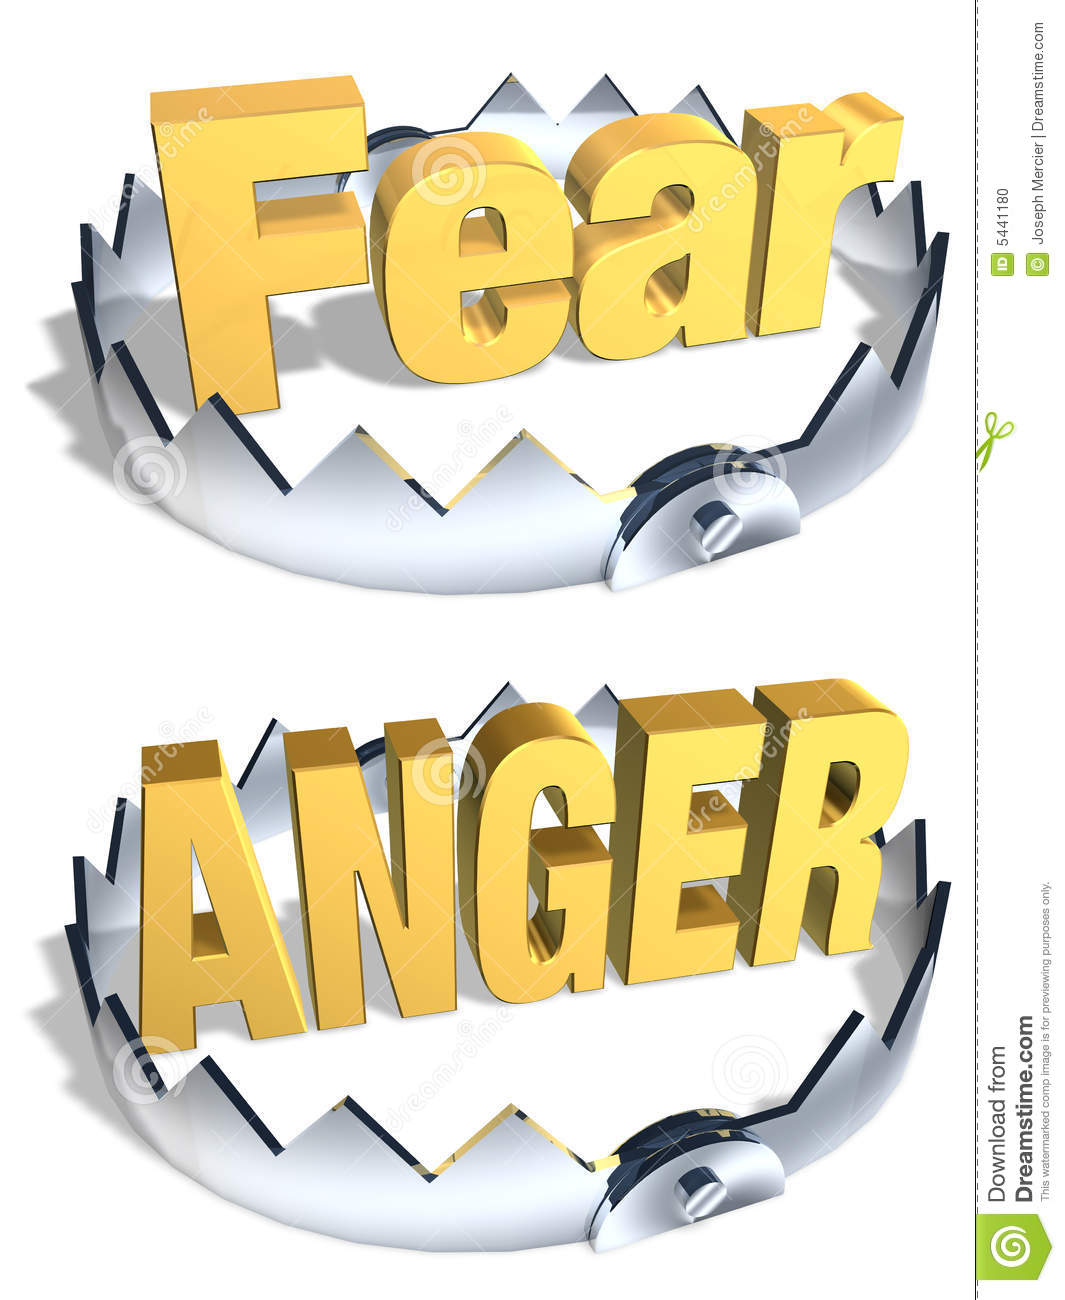 Anger fear trap